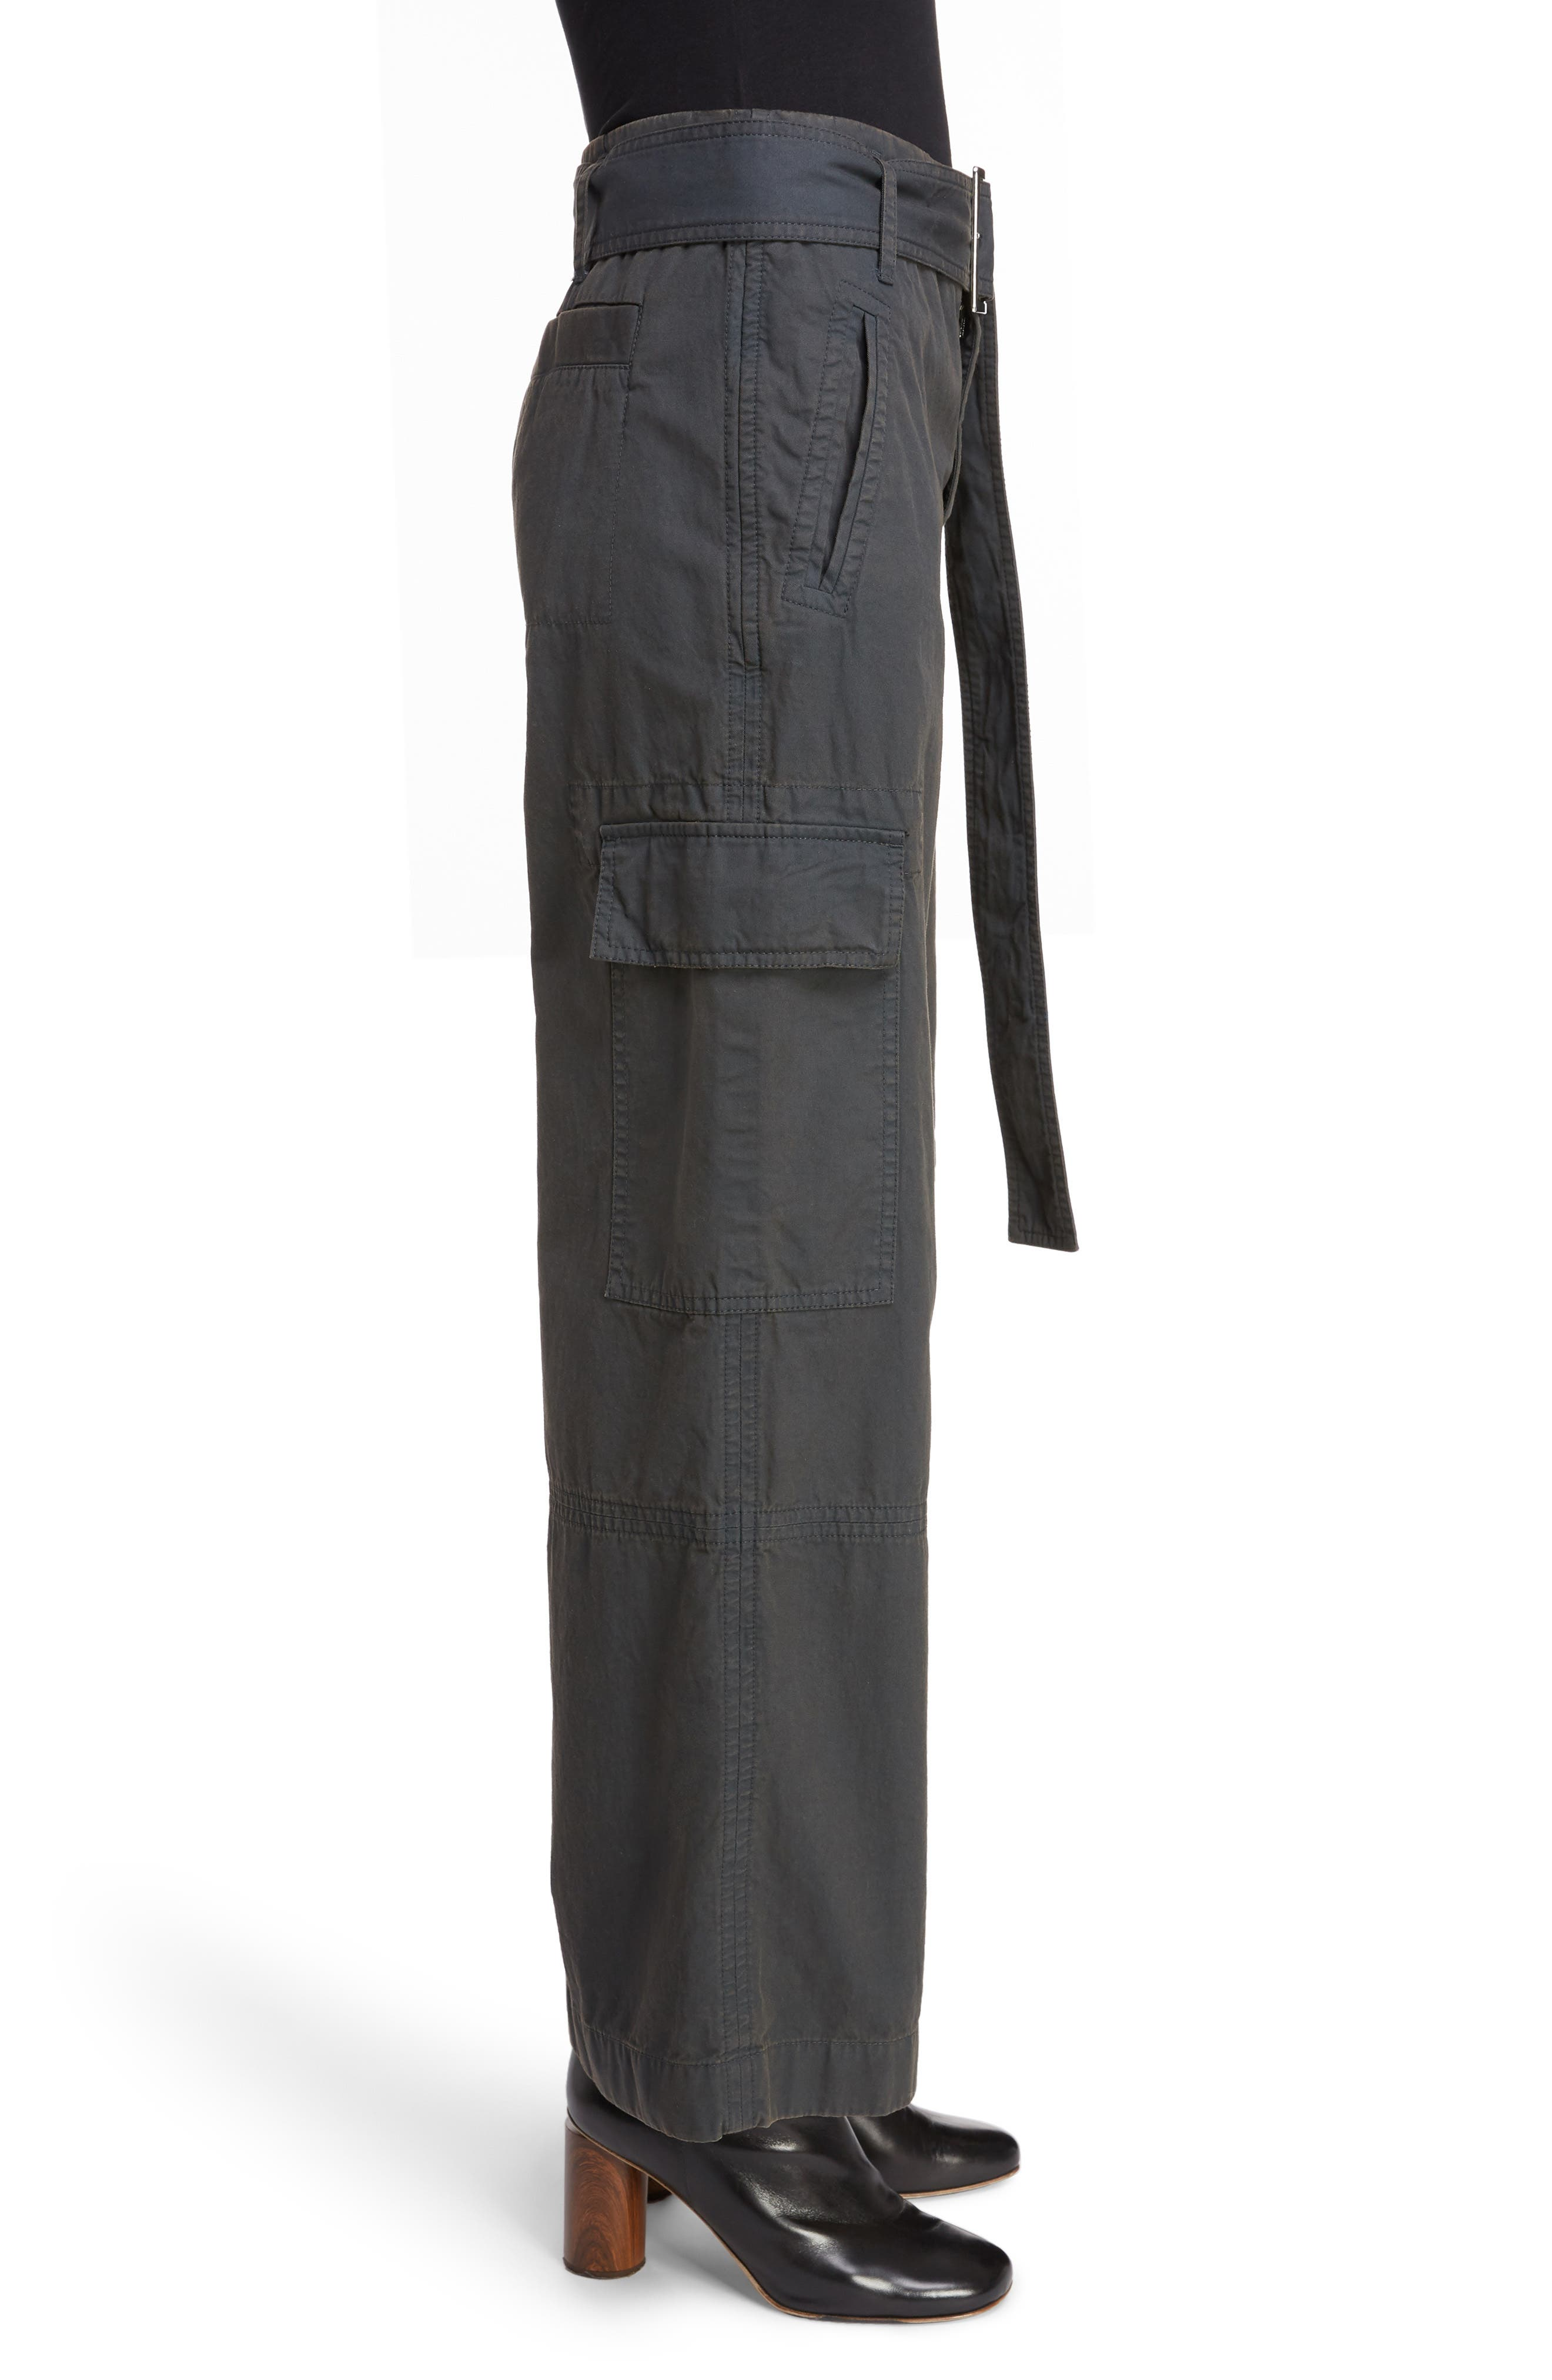 ACNE STUDIOS,                             Patrice Cotton Chino Trousers,                             Alternate thumbnail 3, color,                             ANTHRACITE GREY